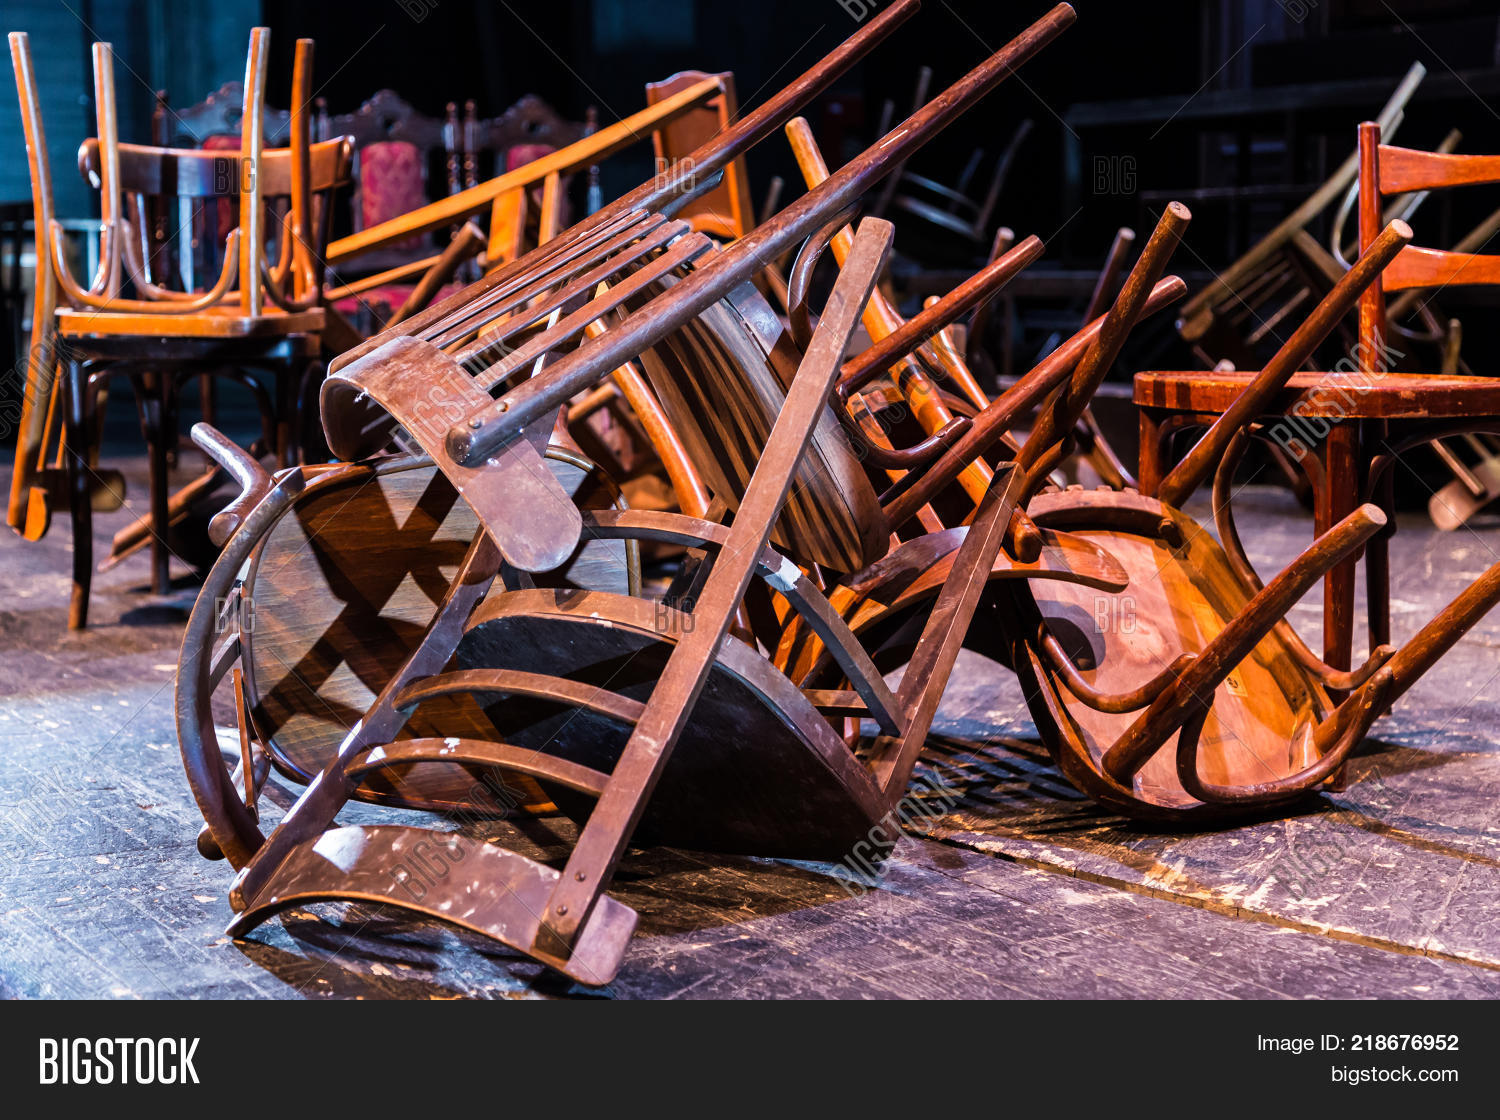 Old Broken Furniture Image Photo Free Trial Stock